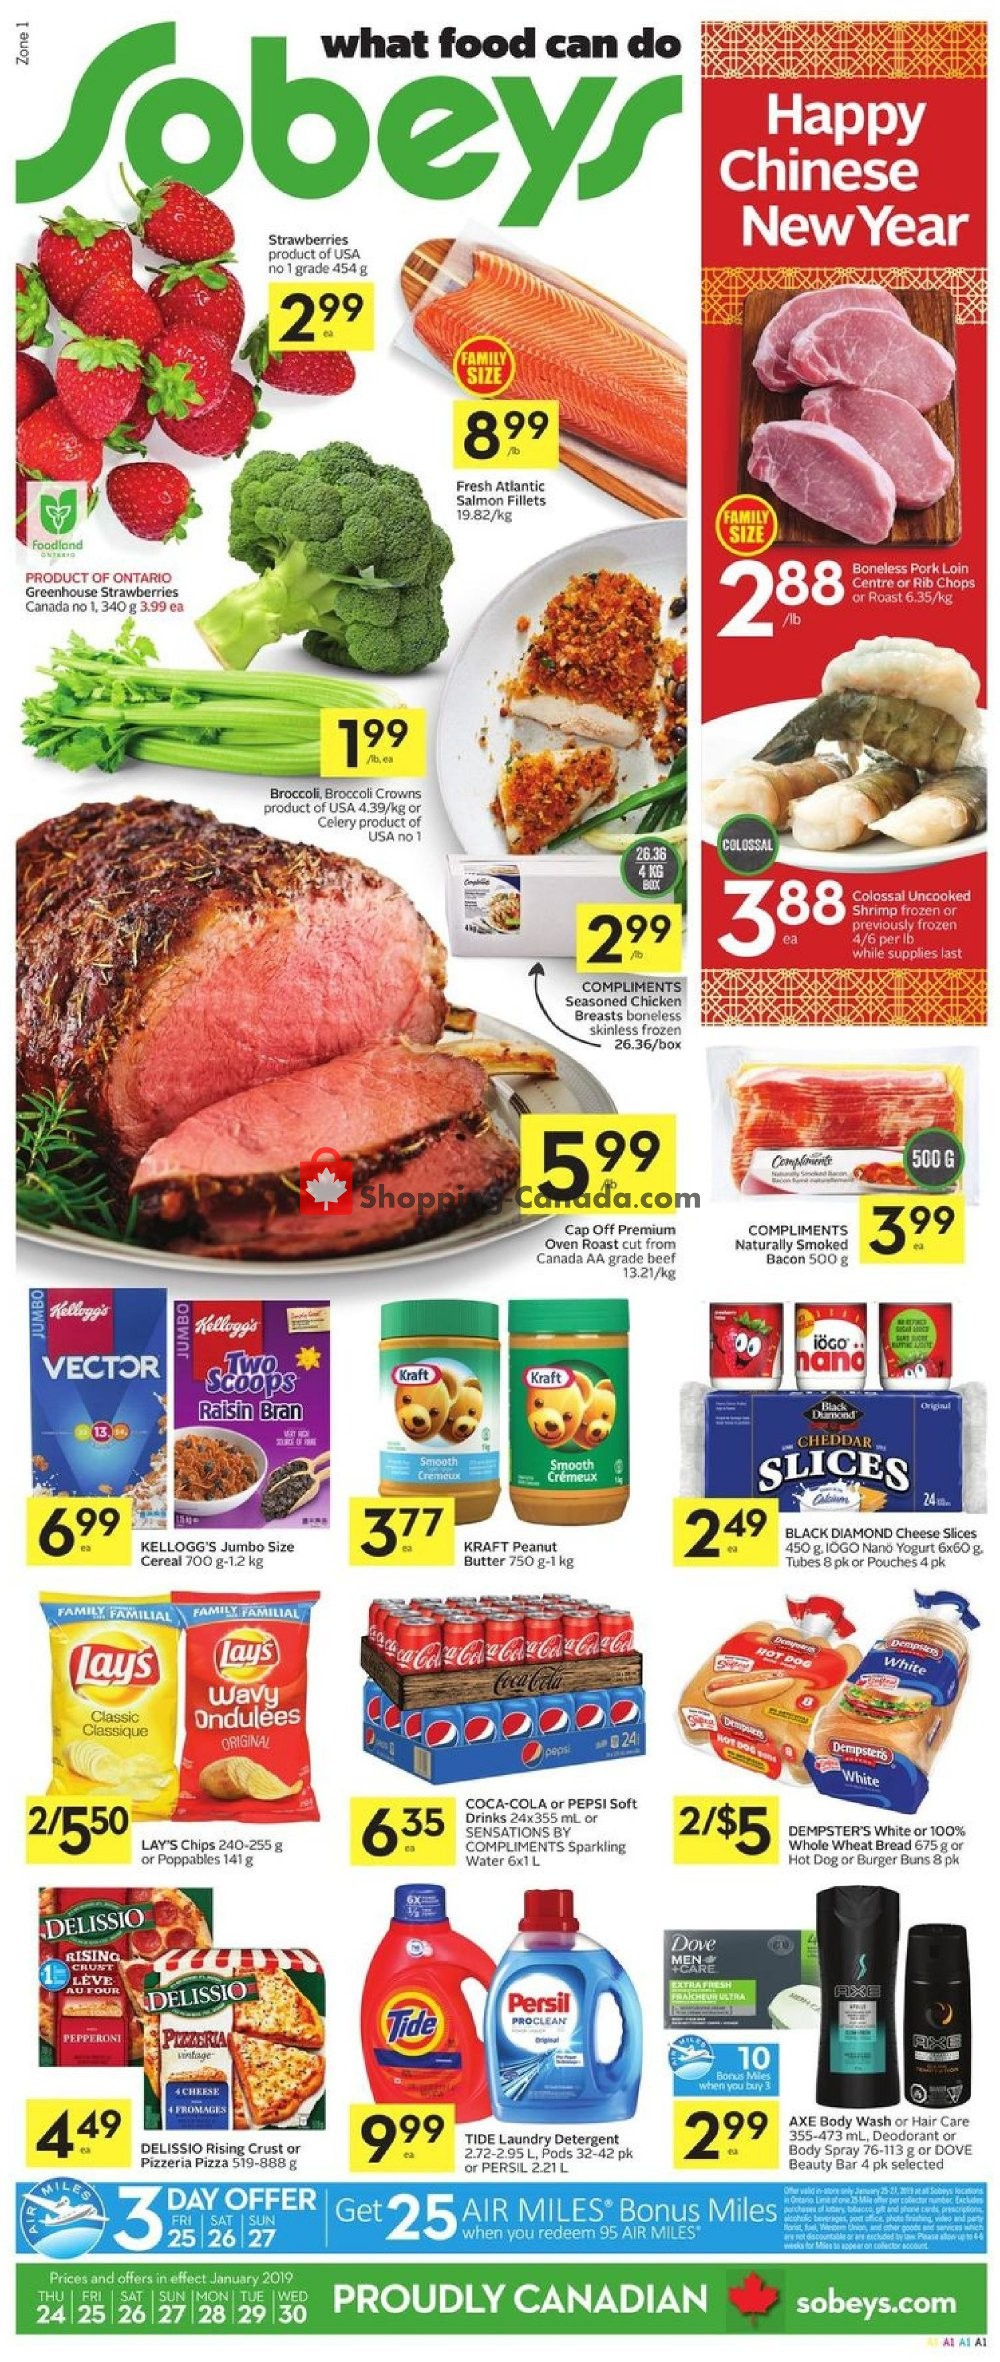 Flyer Sobeys Canada - from Thursday January 24, 2019 to Wednesday January 30, 2019